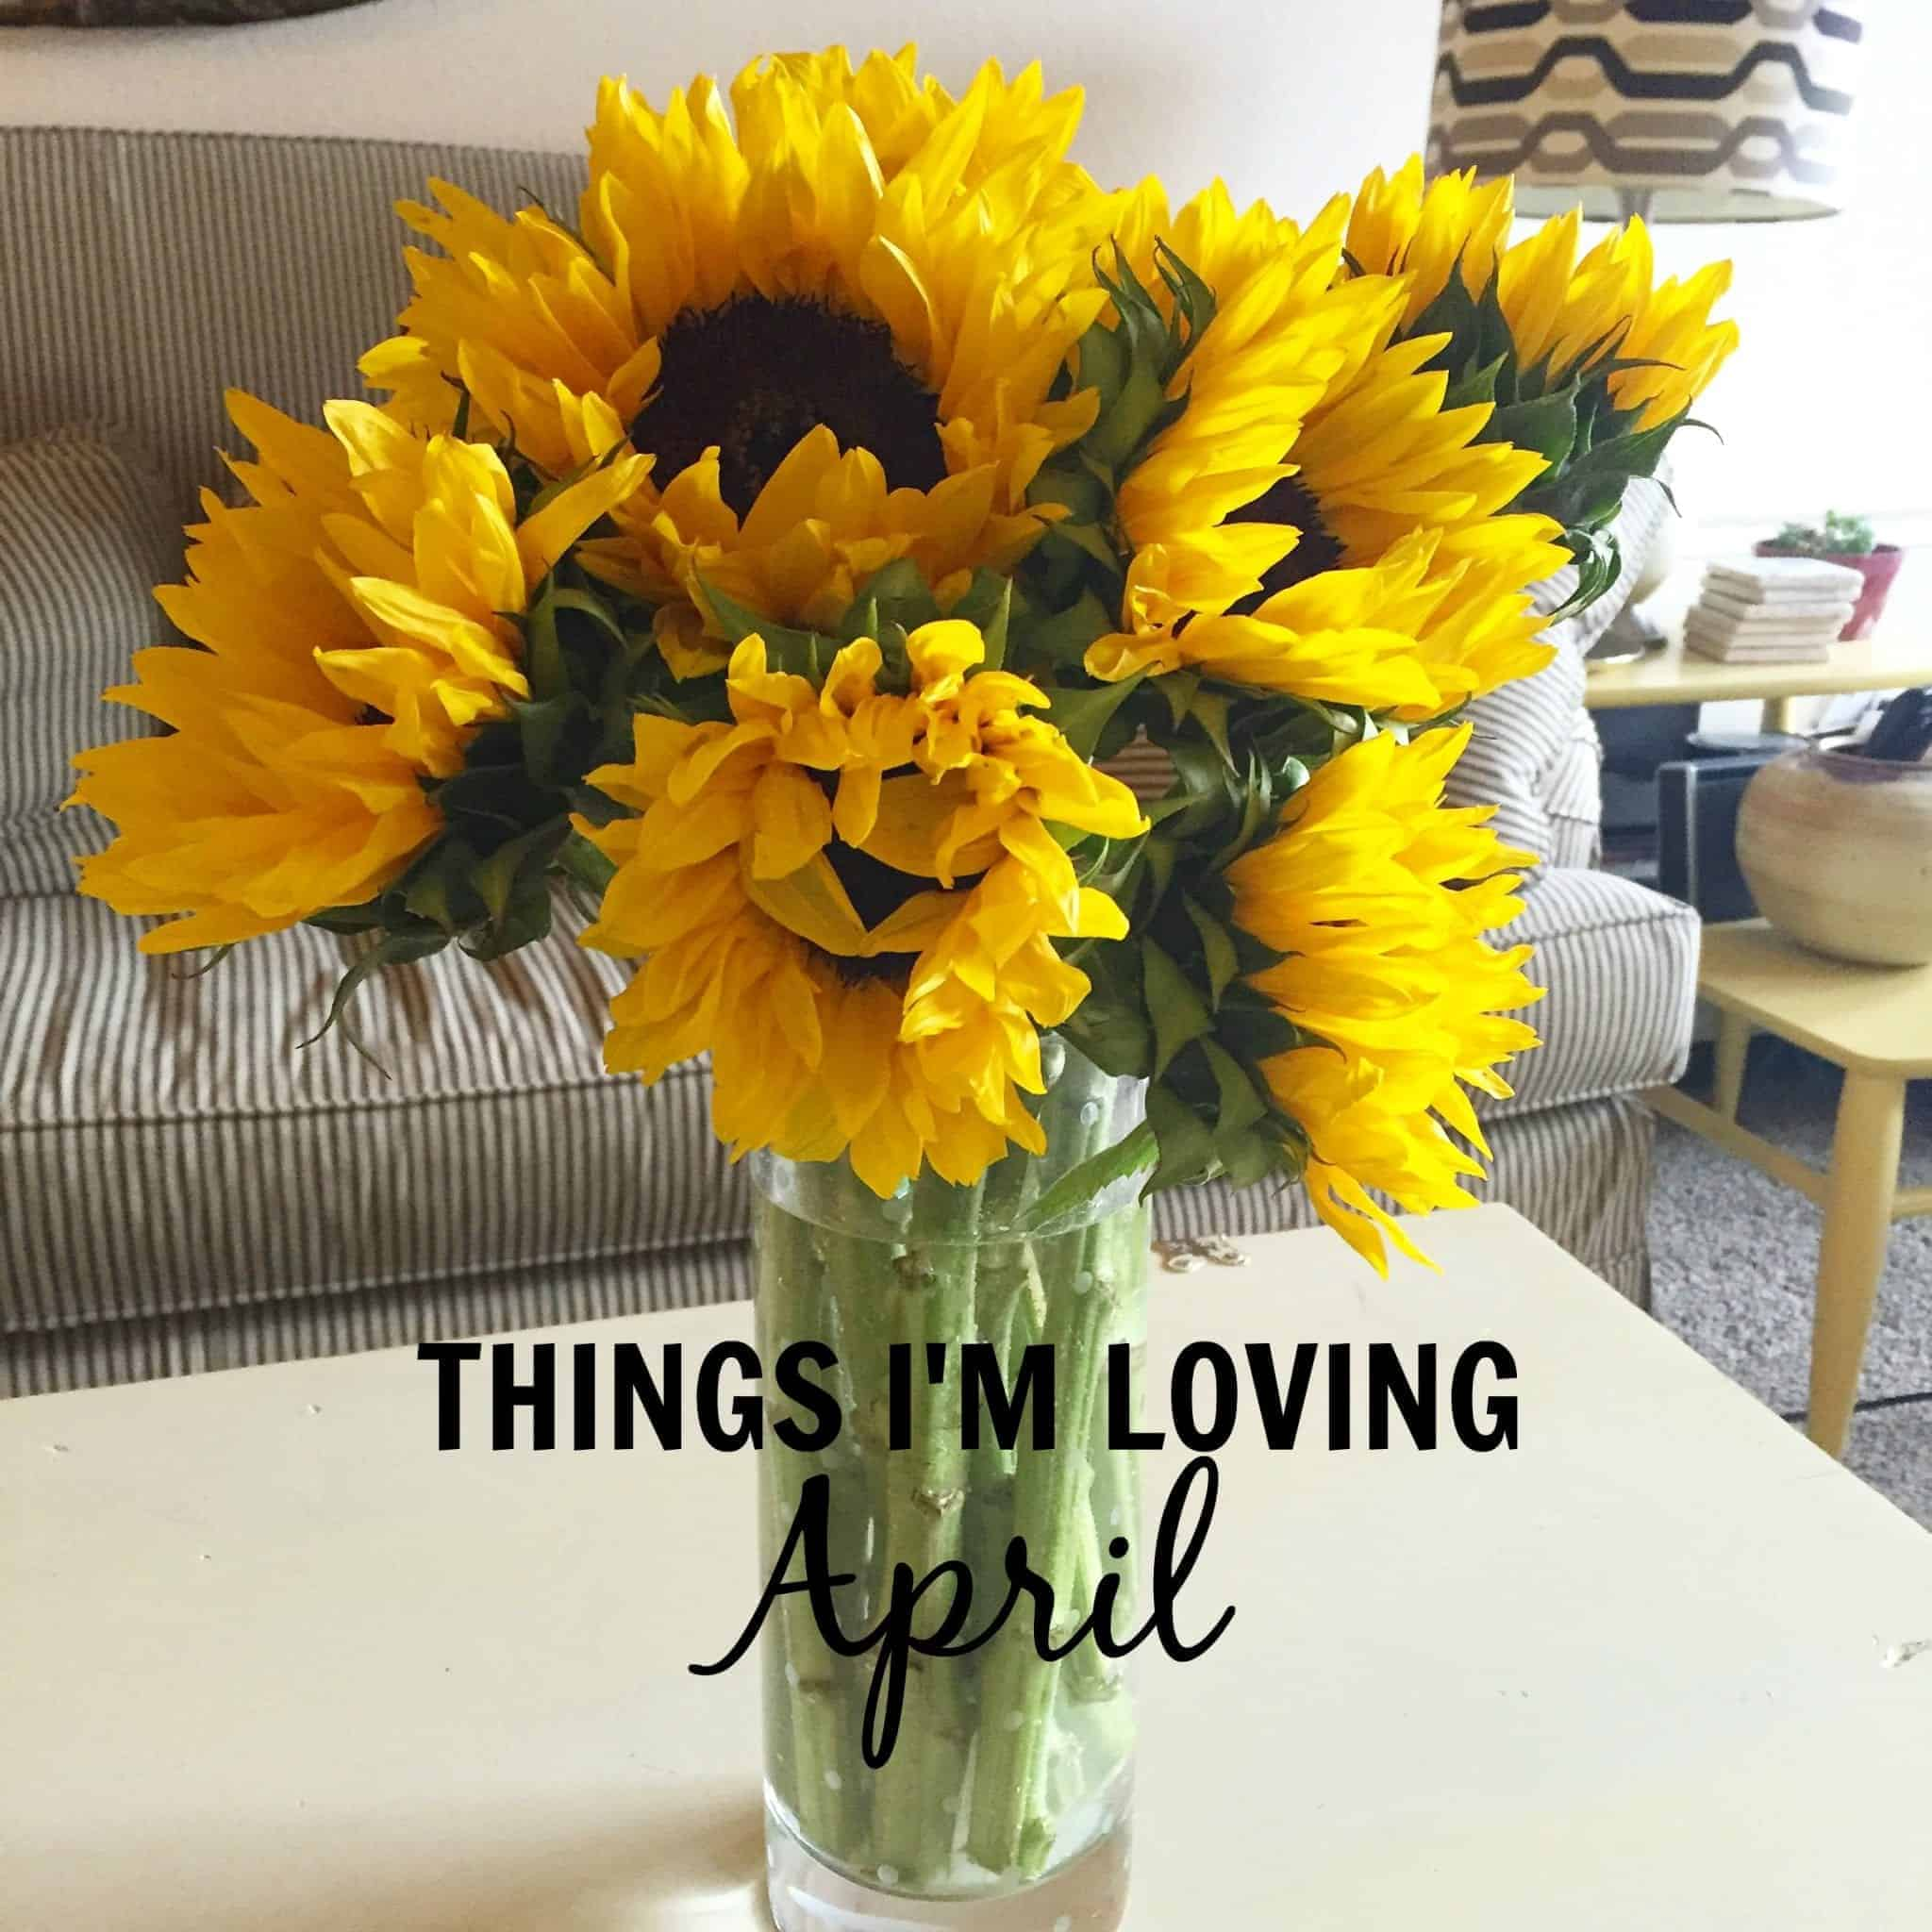 Things I'm Loving April 2016 from Treble in the Kitchen